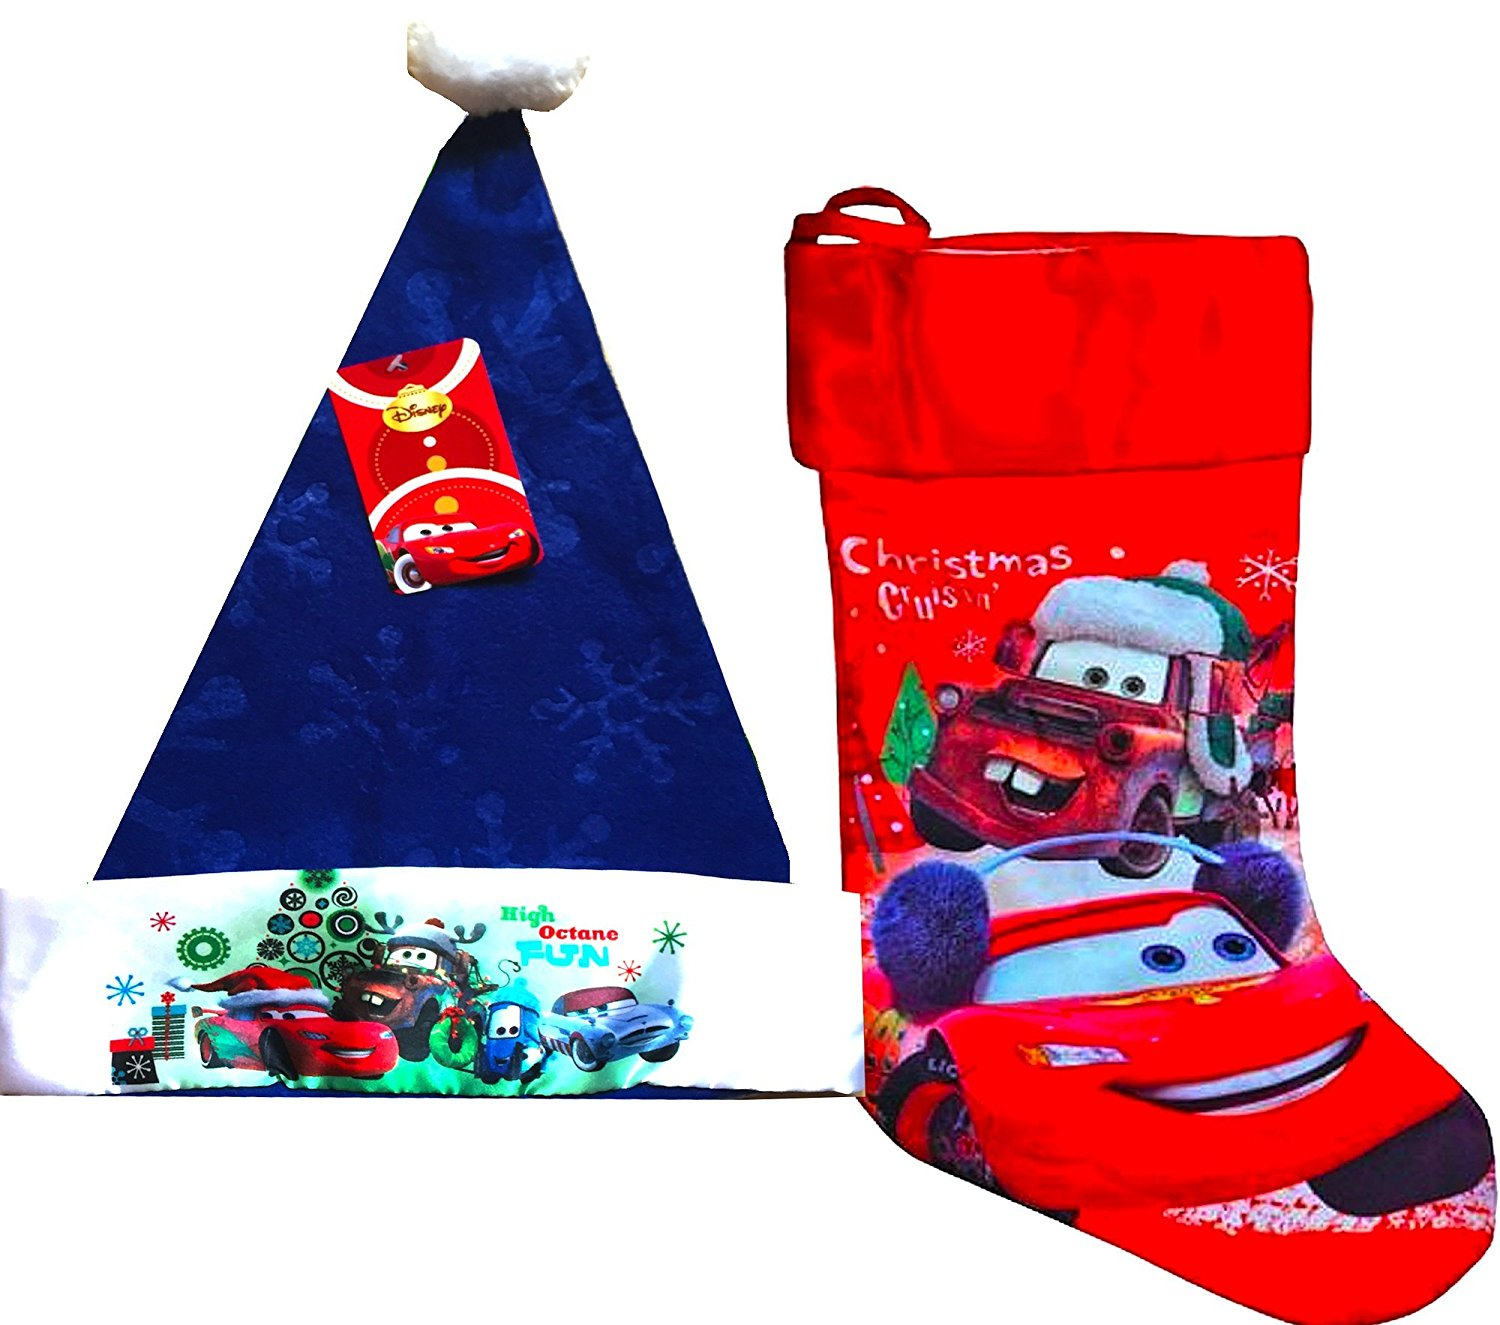 Disney Cars Christmas Decorations.Buy Disney Cars Lightning Mcqueen And Mater Christmas